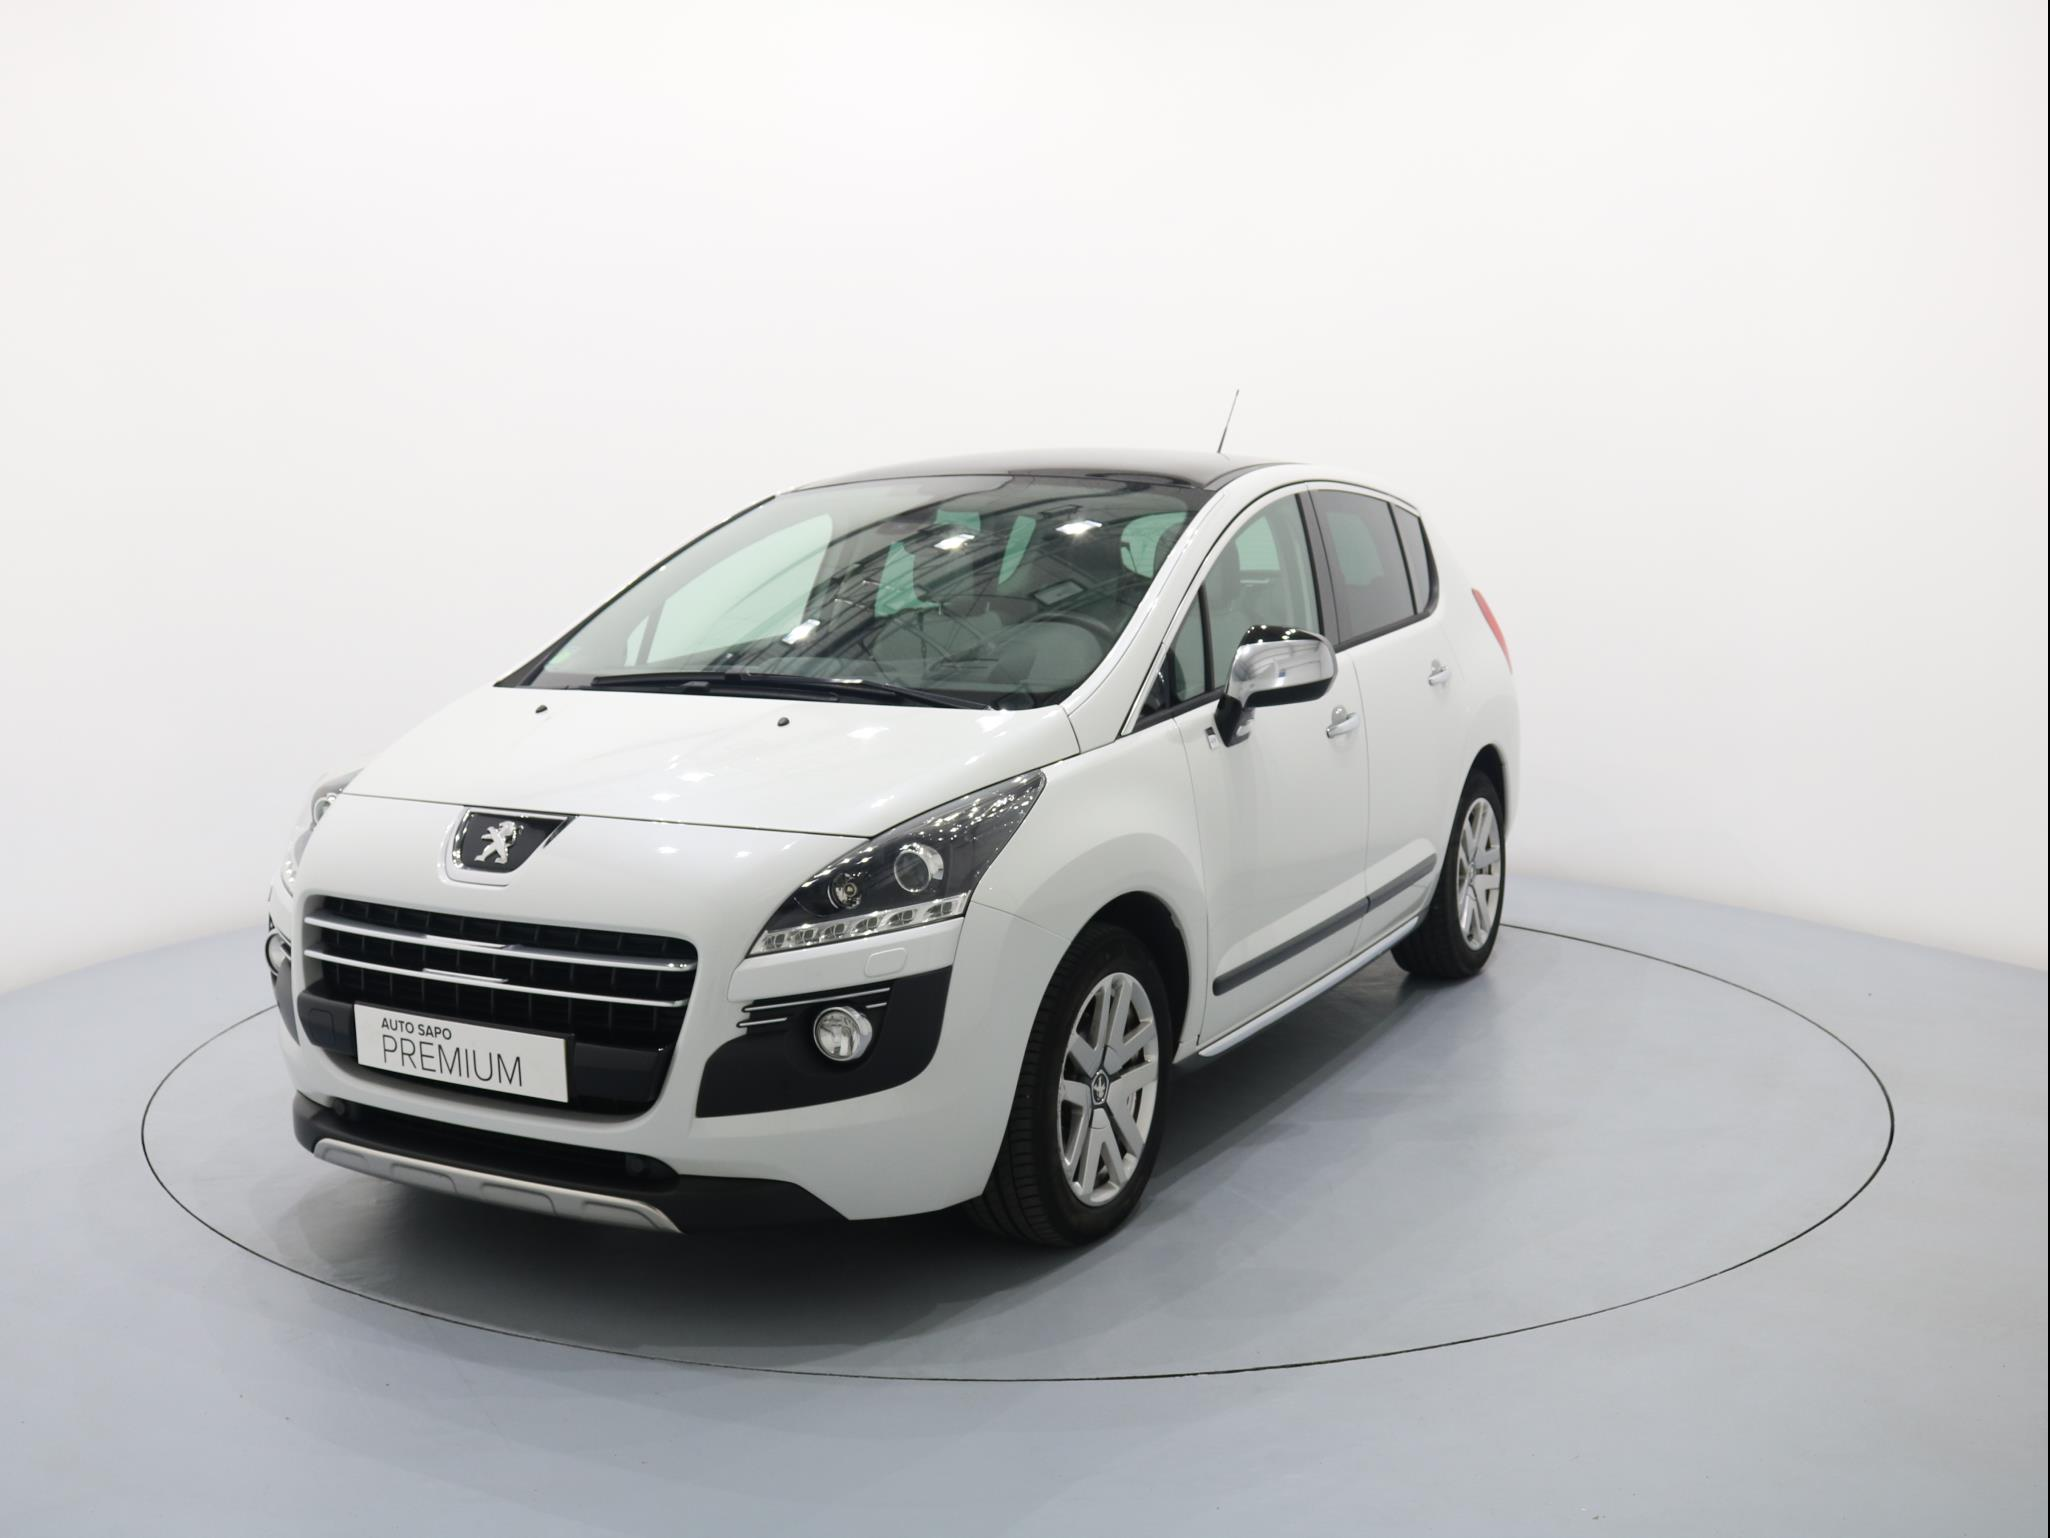 Peugeot 3008 2.0 HDi Hybrid Limited Edition